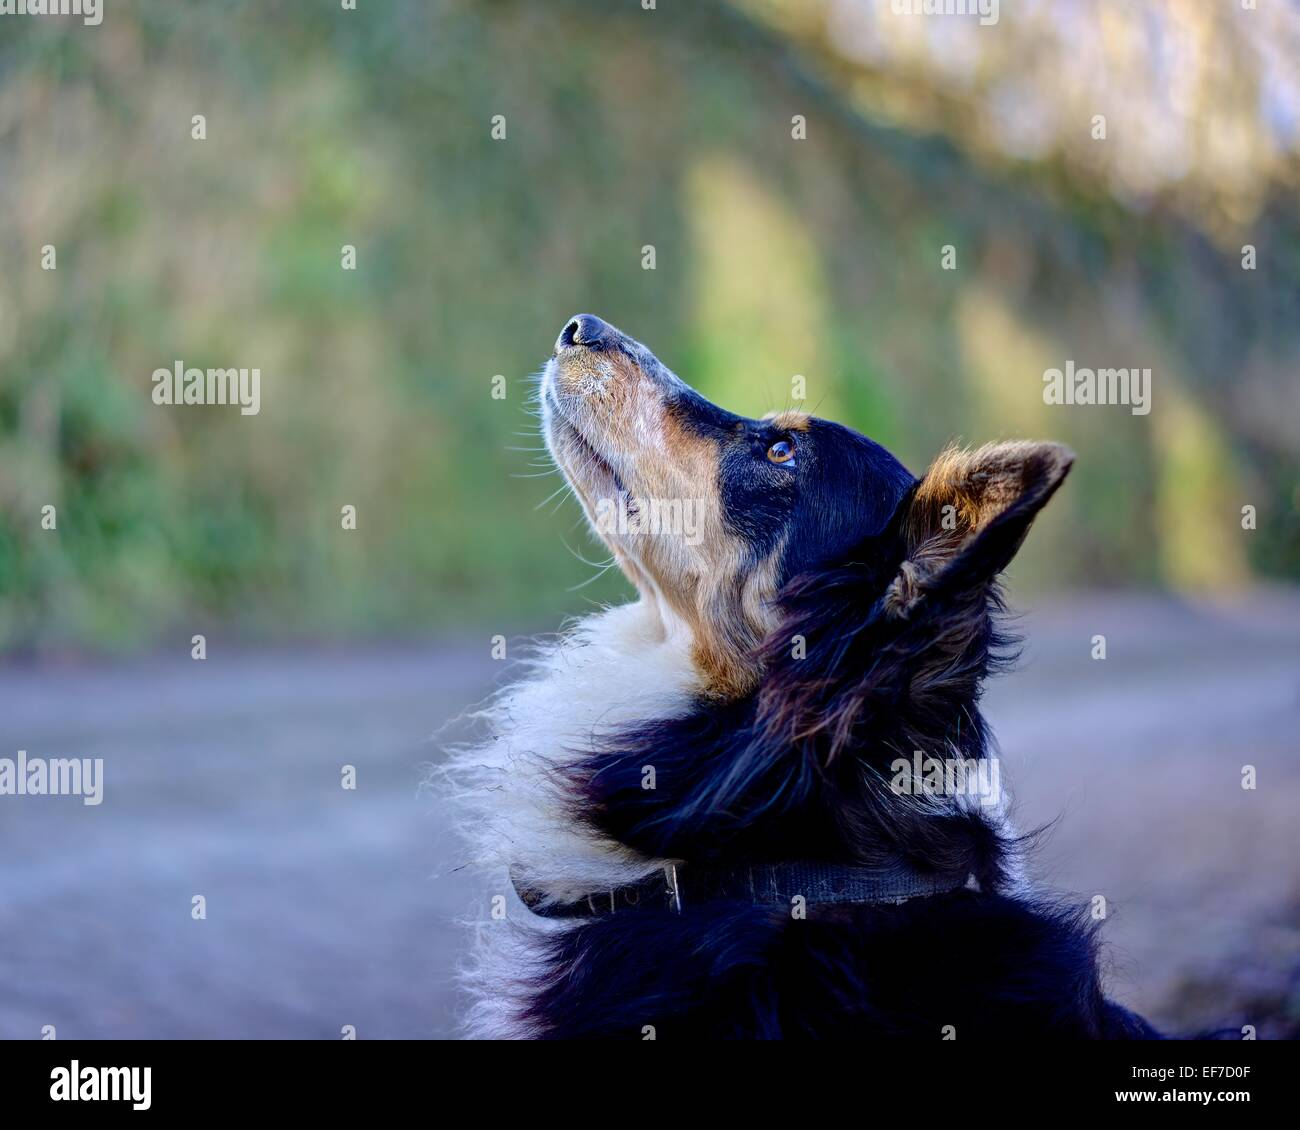 A Collie Cross Dog obeying attentively her master to sit still against a blurred background of the country lane - Stock Image